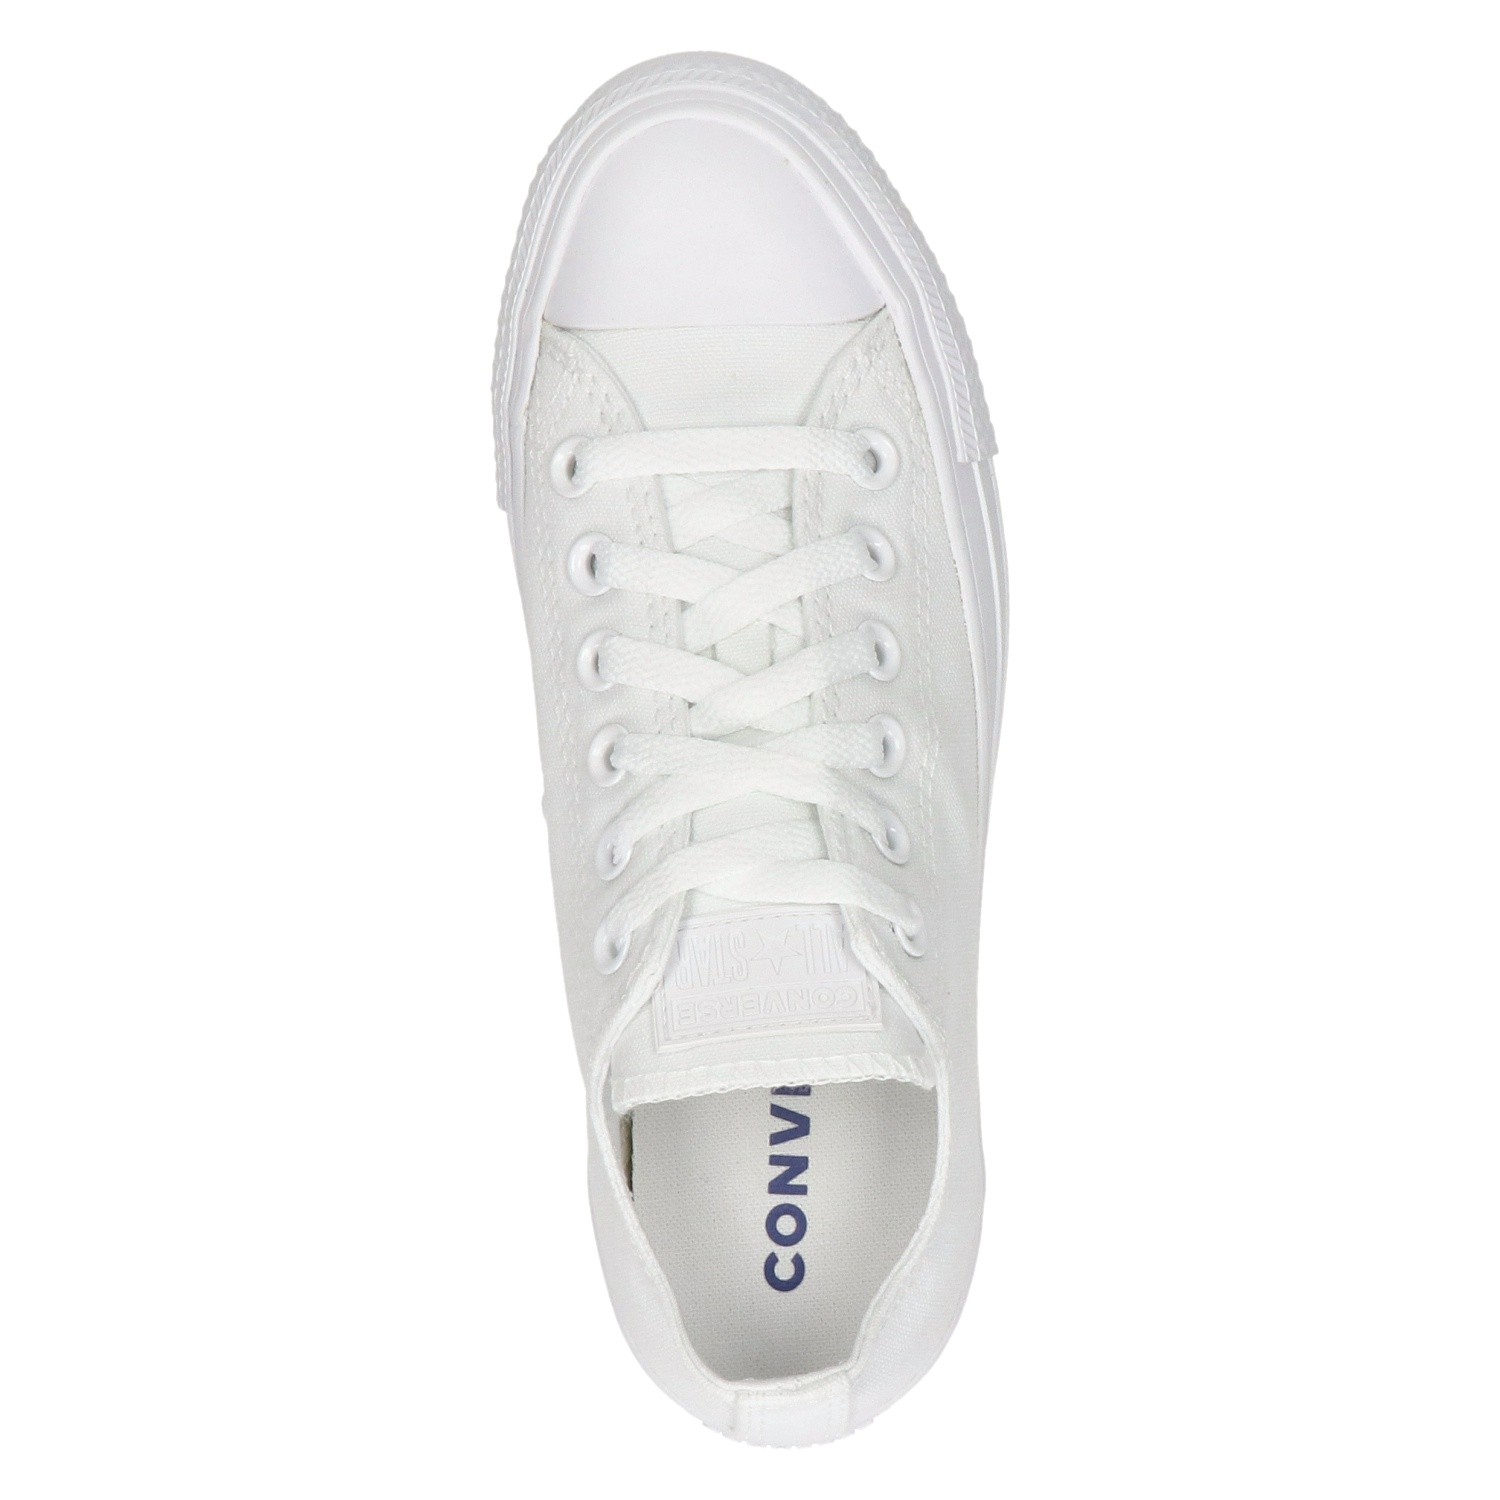 9477c1bb953 Converse All Star dames lage sneakers. Previous